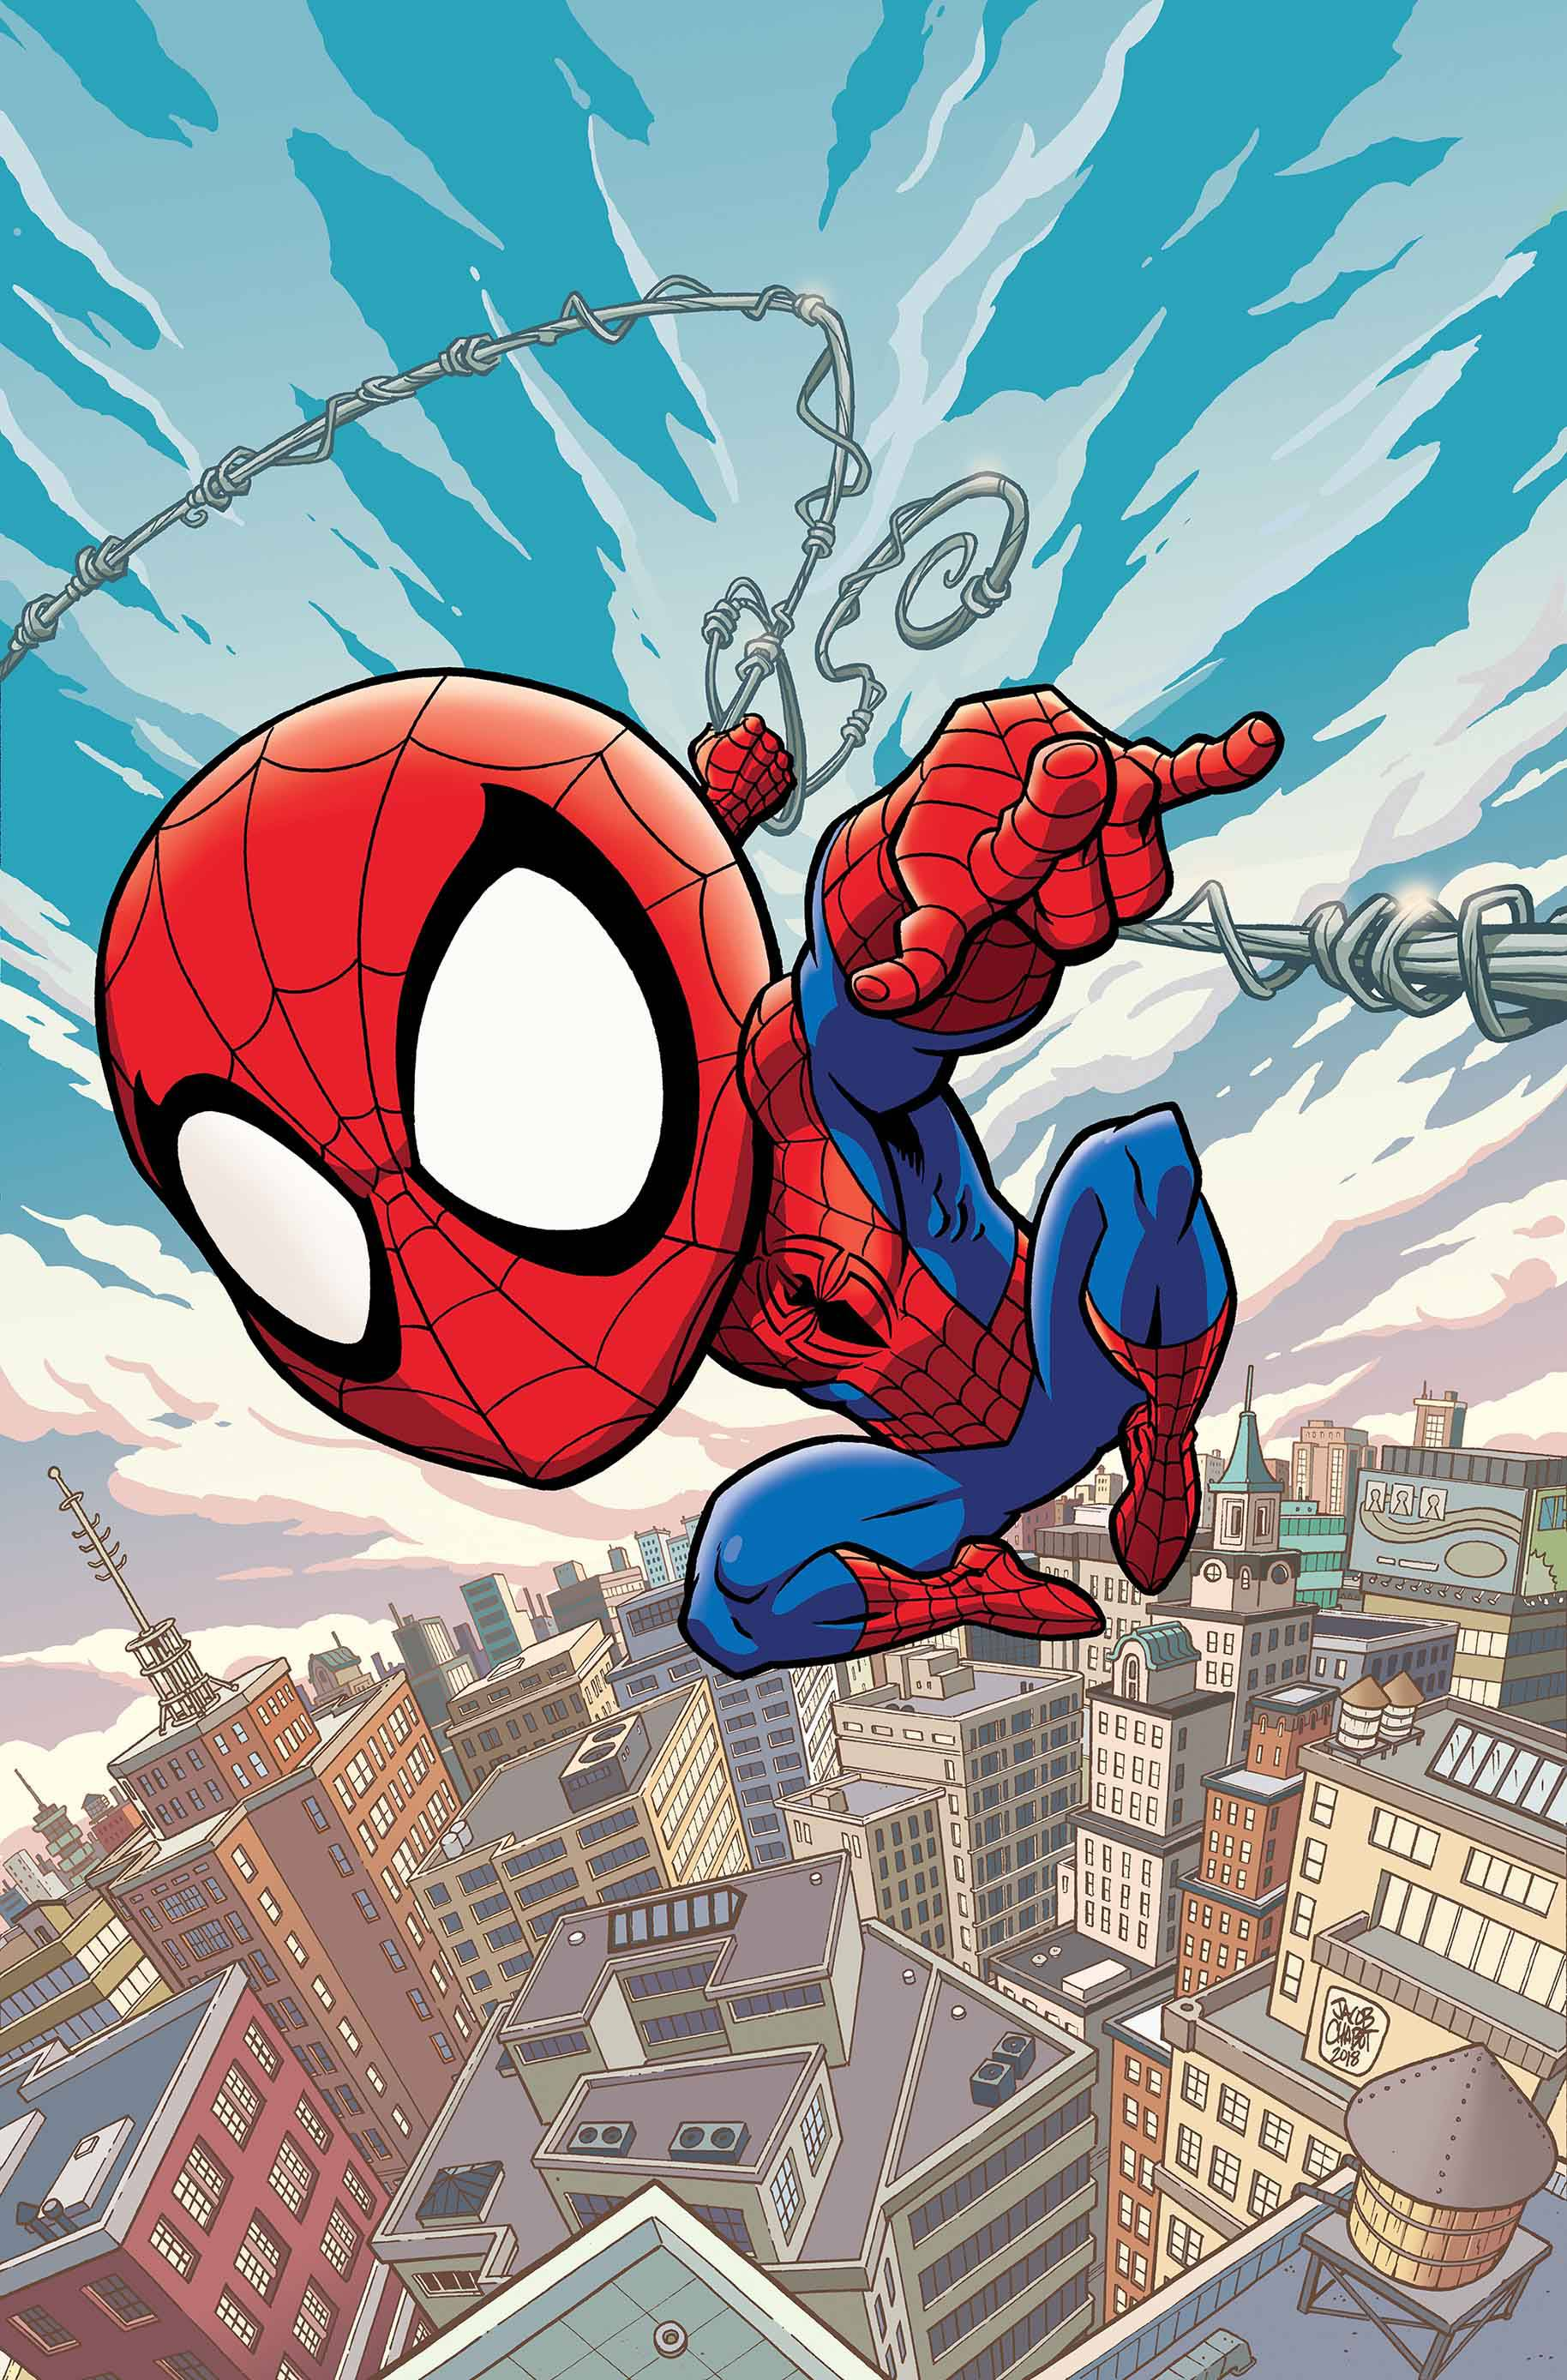 MSH ADVENTURES SPIDER-MAN SPIDER-SENSE OF ADVENTURE 1.jpg